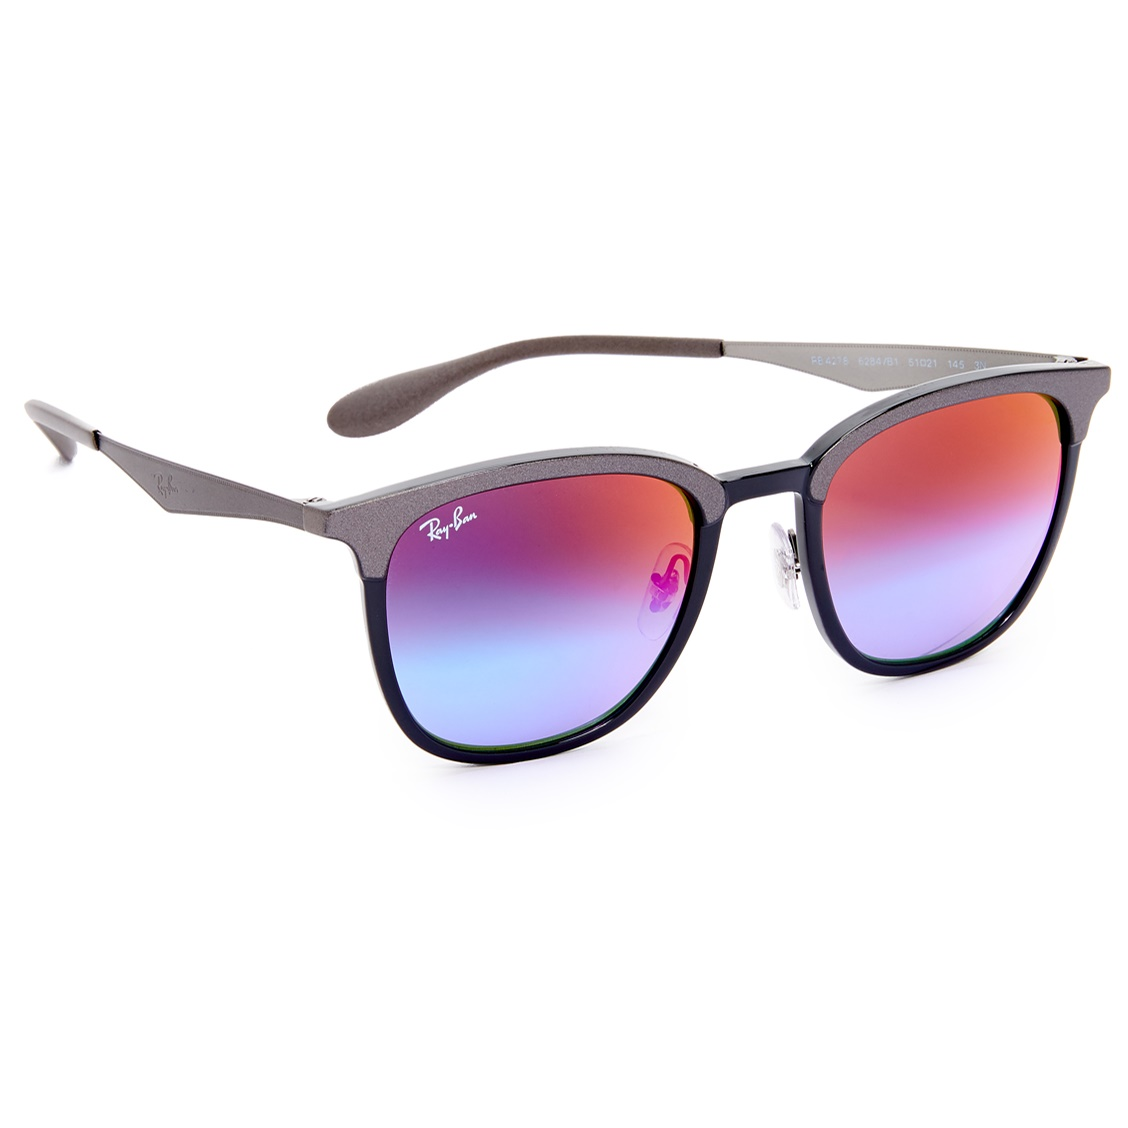 Ray-Ban Mens Square Sunglasses